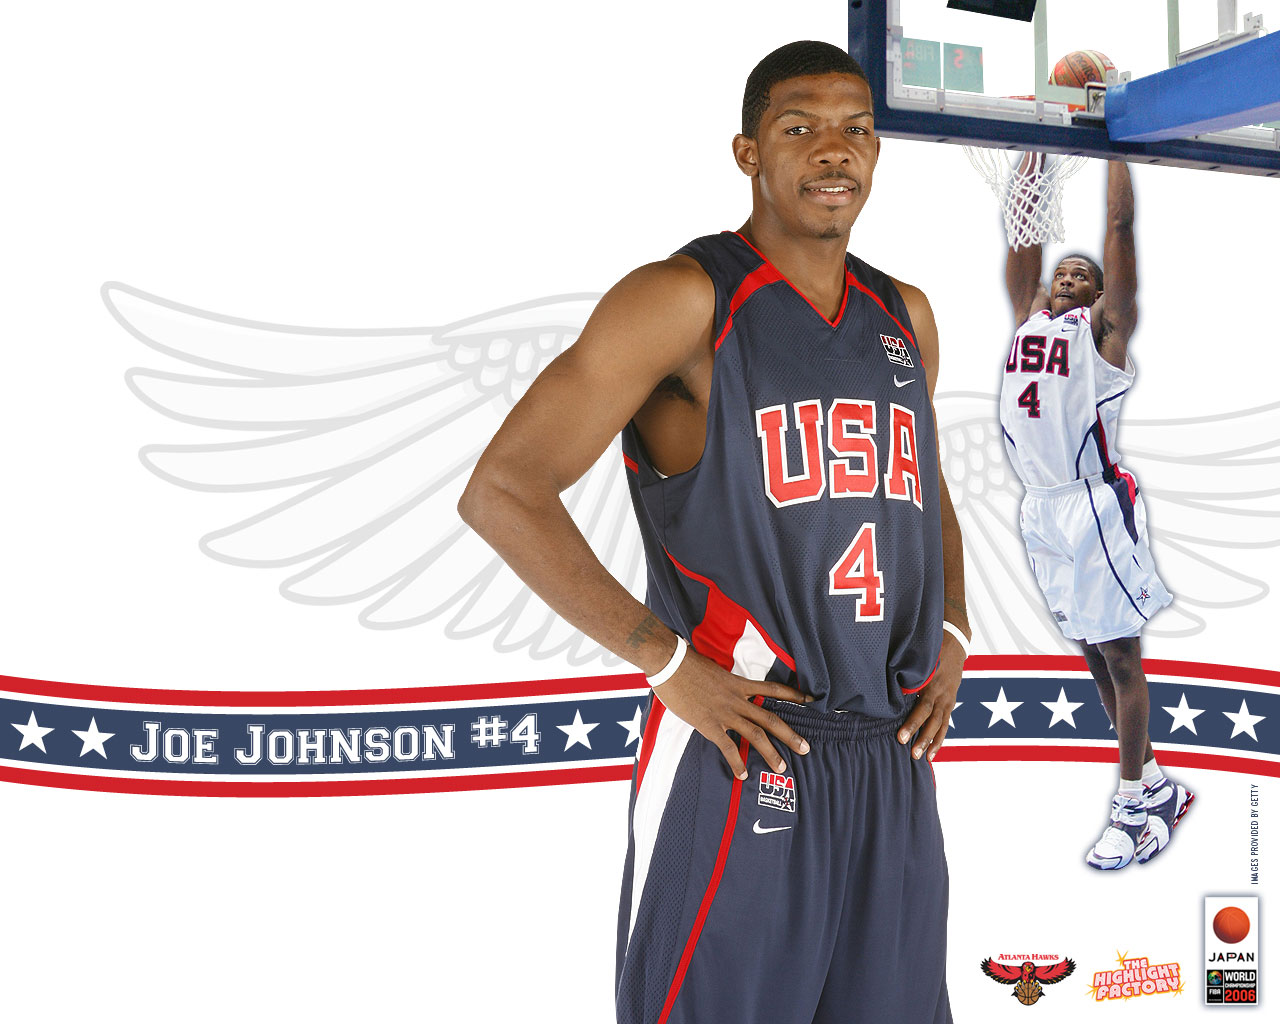 Joe Johnson Dream team Wallpaper Basketball Wallpapers 1280x1024